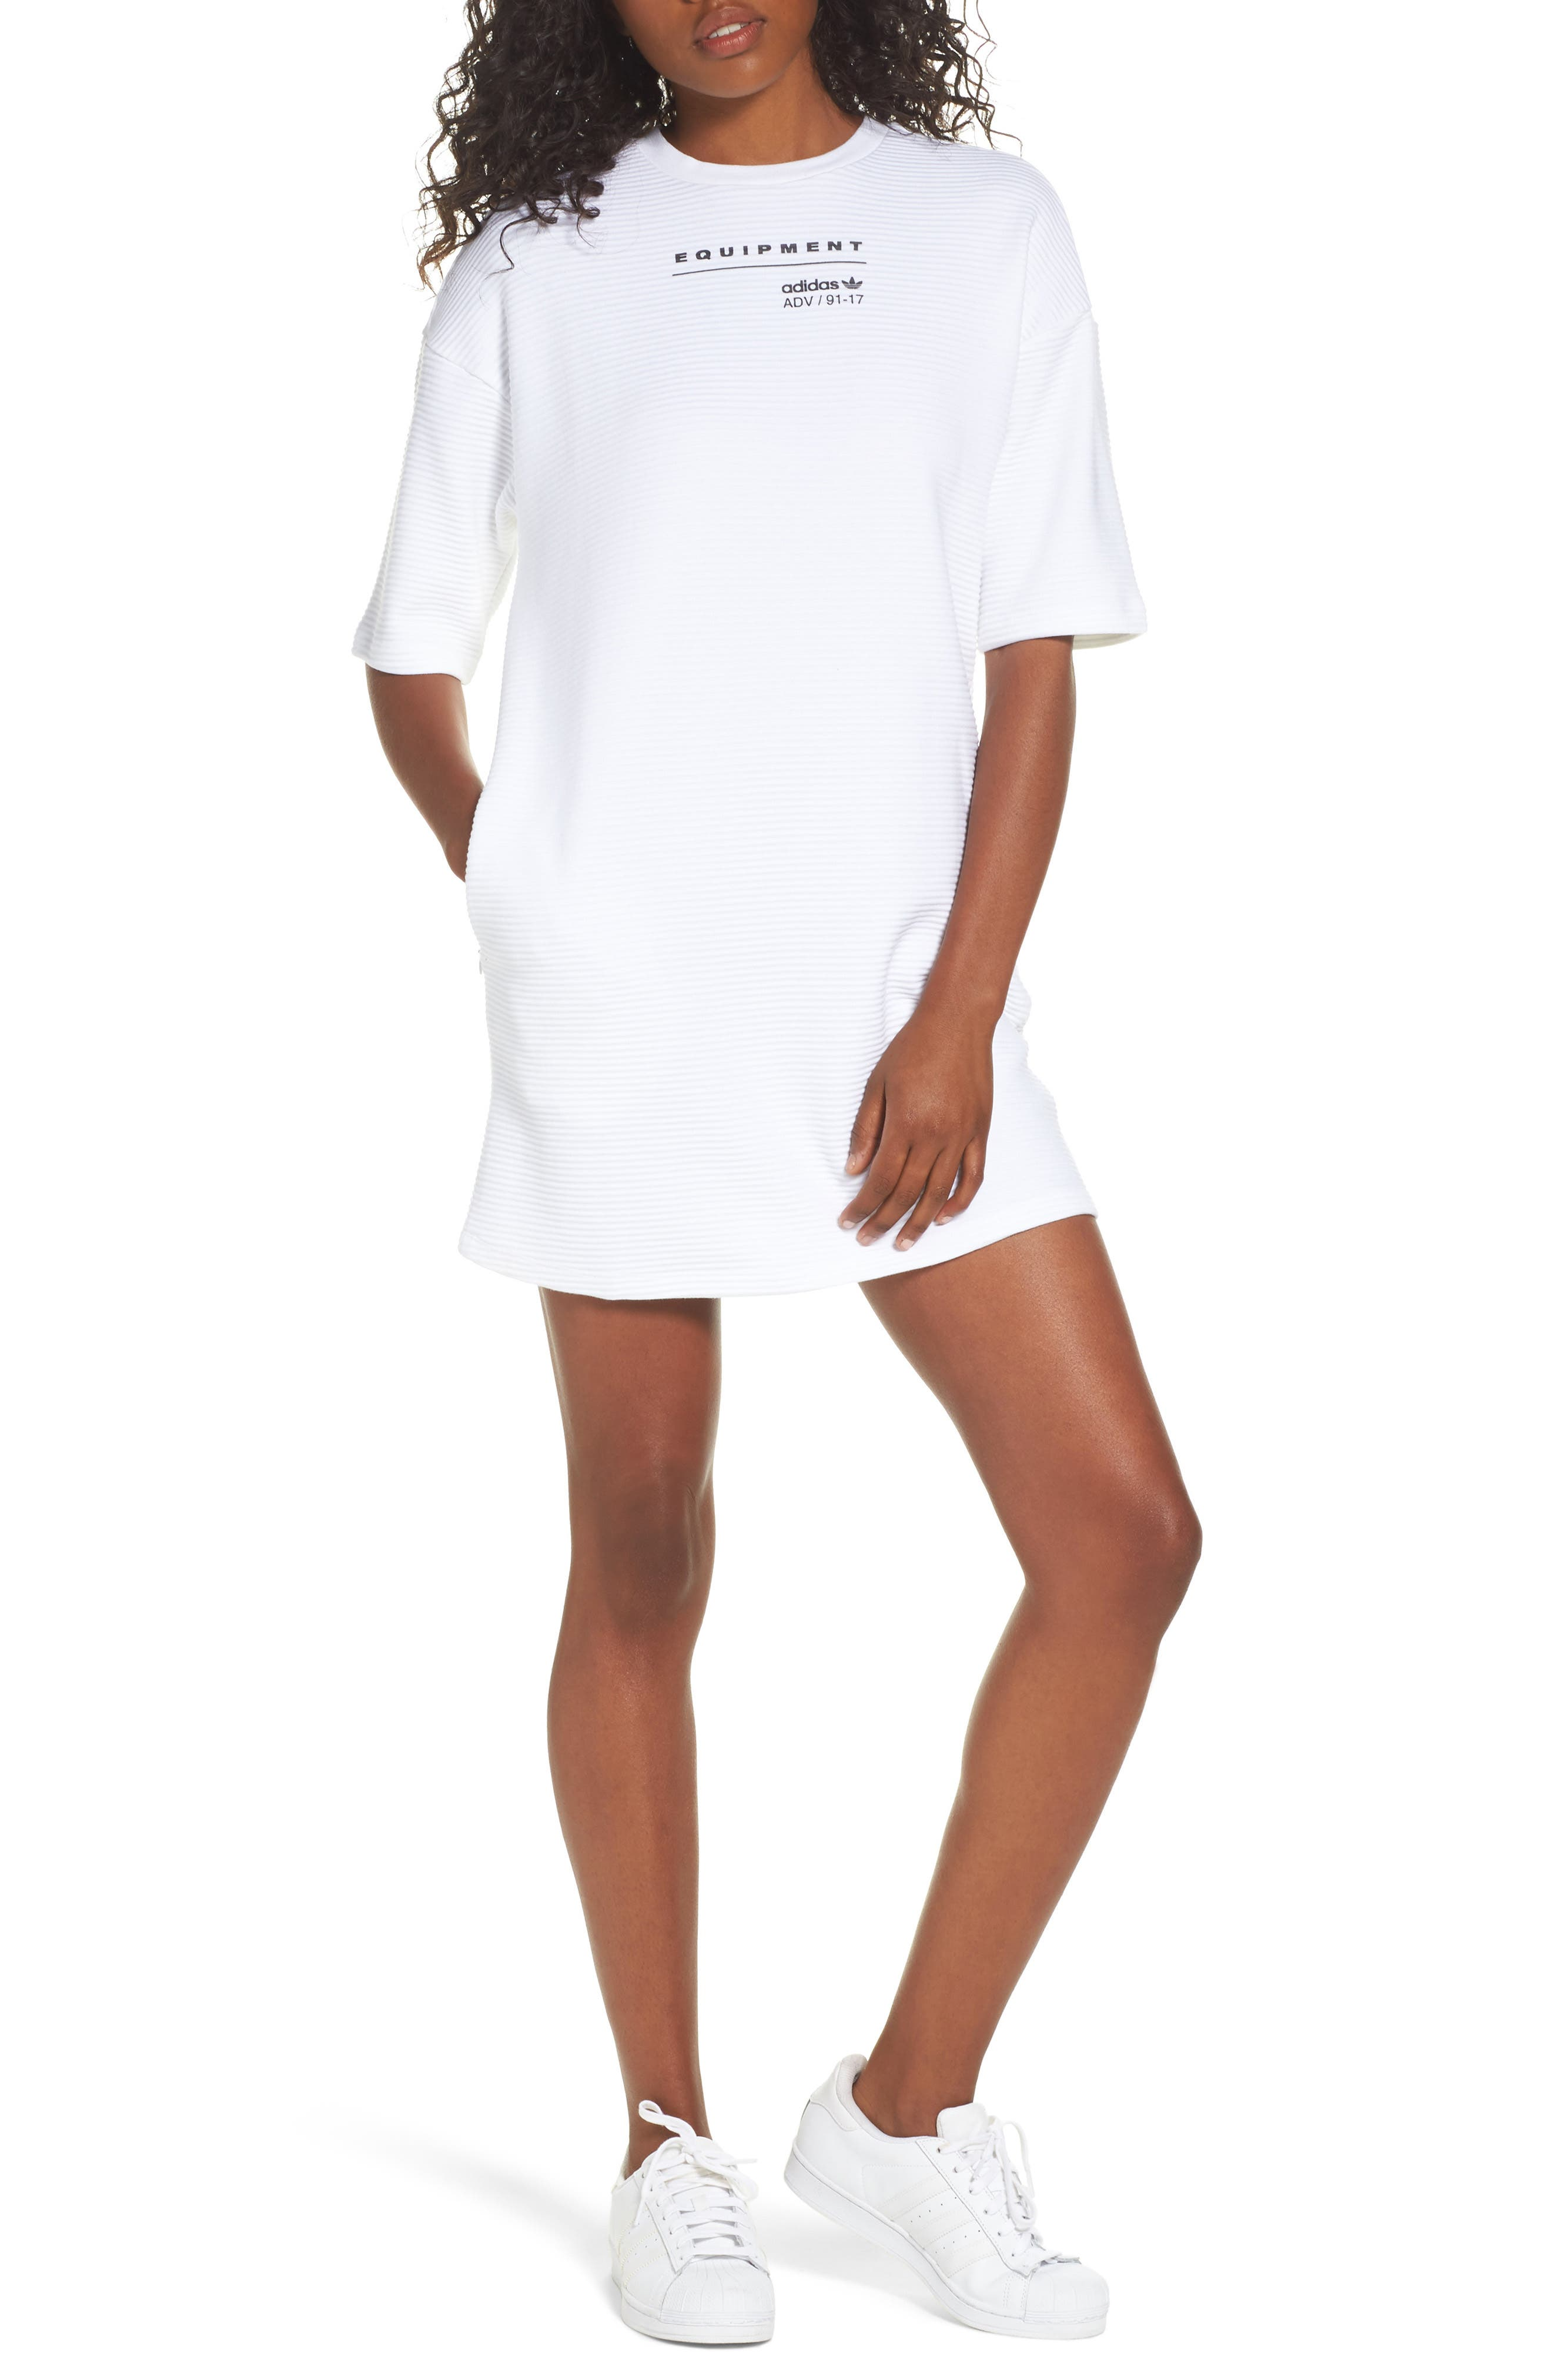 Originals EQT T-Shirt Dress,                         Main,                         color, White